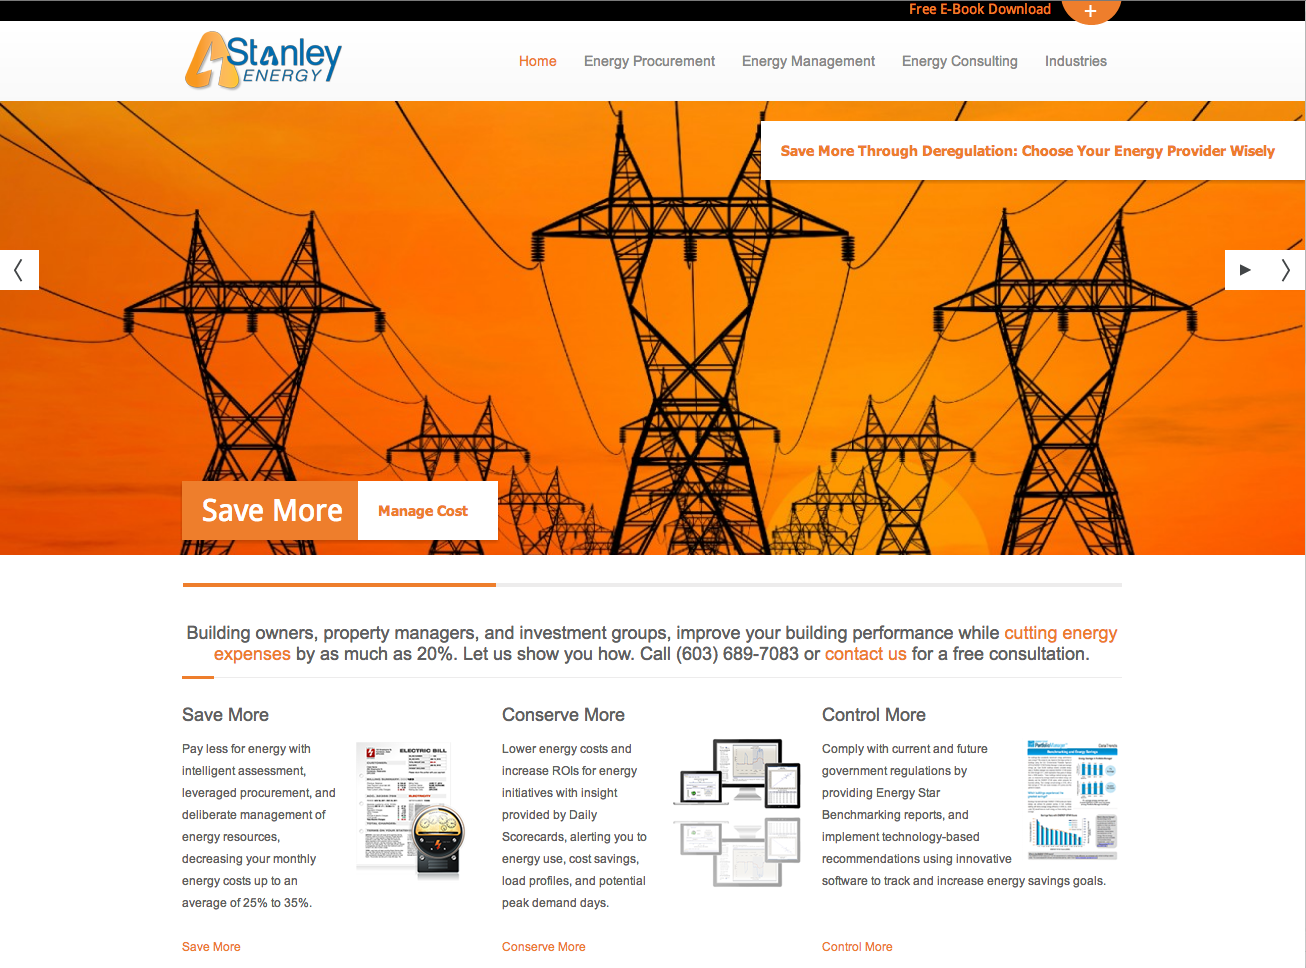 stanley energy website